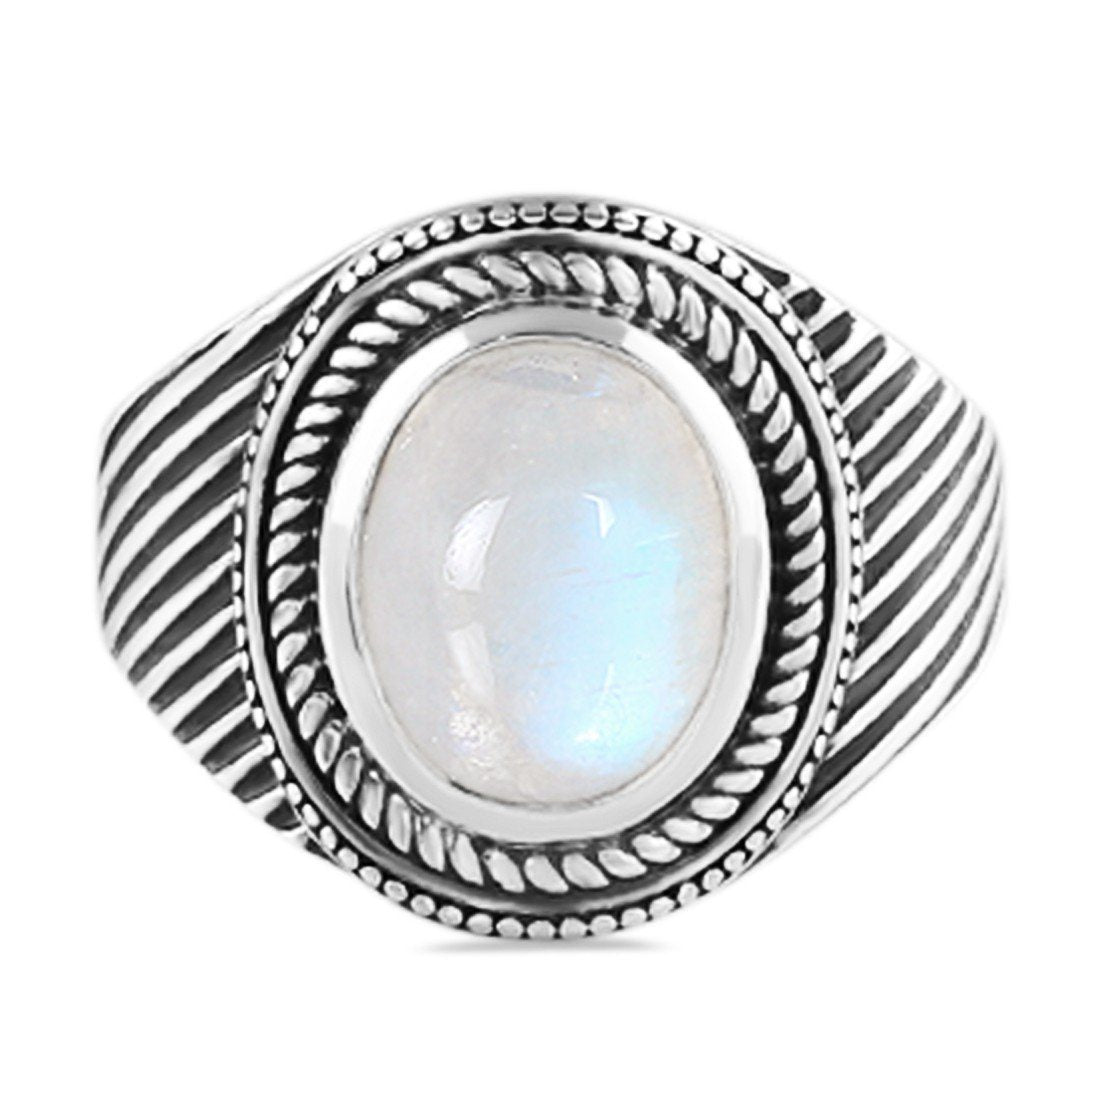 Moonstone Ring-Silver Moon Sale Item 925 SILVER & MOONSTONE